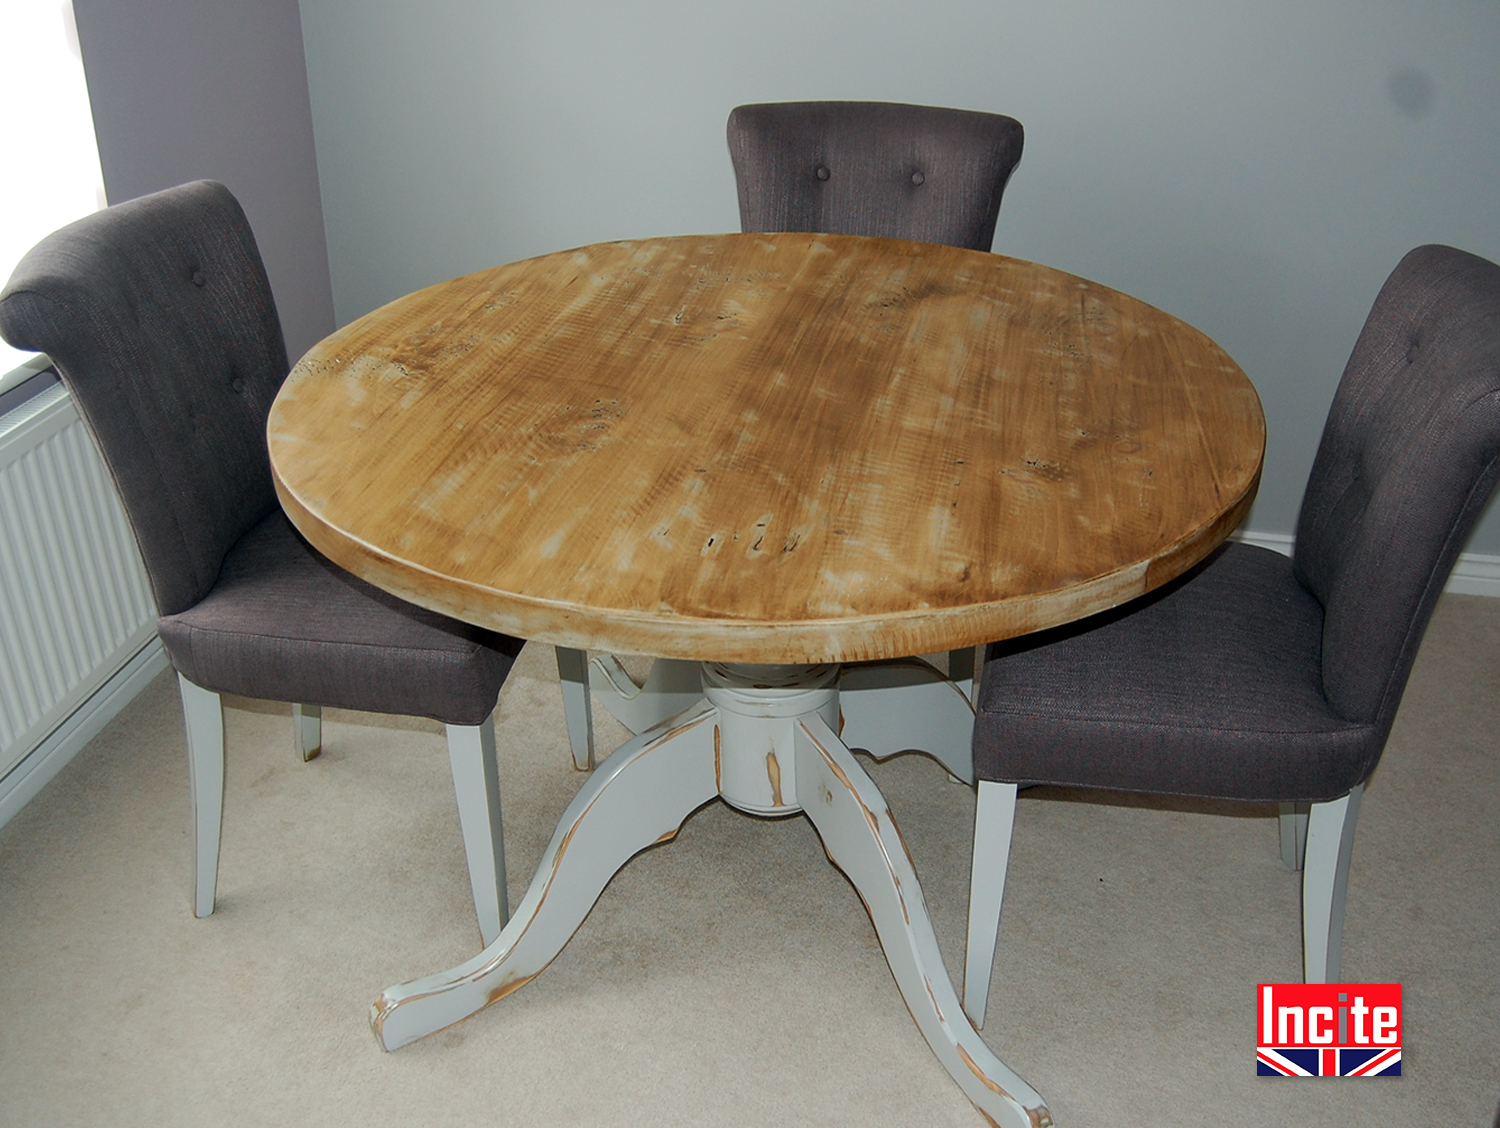 Distressed painted and pine round tables by incite derby for Painted round dining table and chairs